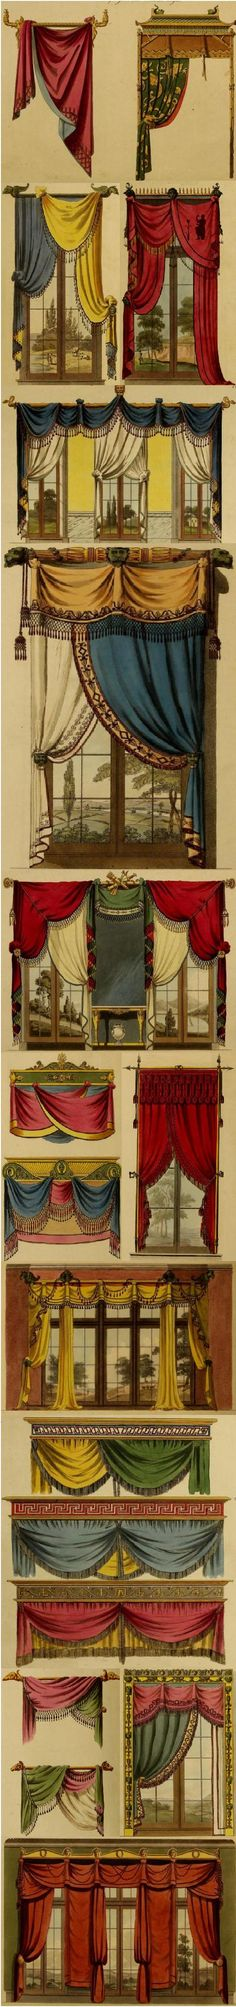 Beautiful drapery ideas from 1808, in the book, Collection of Designs for Household Furniture and Interior Decoration, in the Most Approved and Elegant Taste ...You can read it on the DIY Collaboratorium's library page.